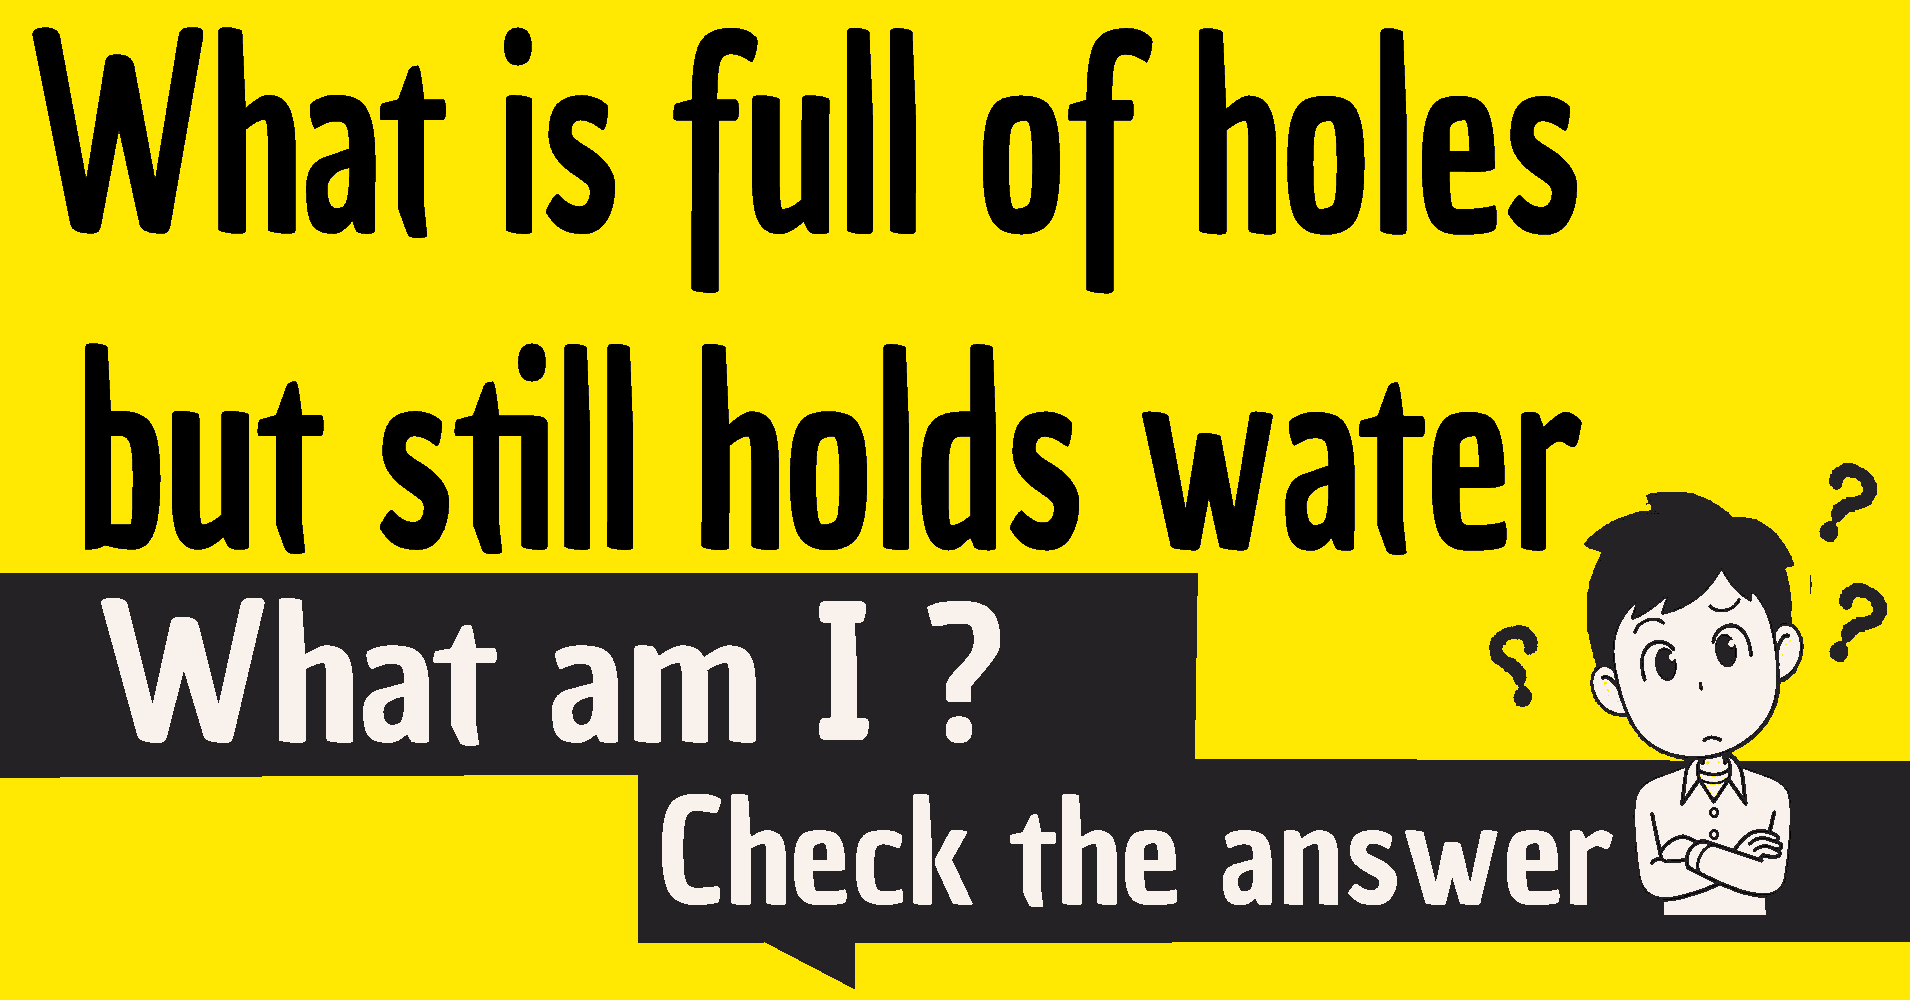 What is full of holes but still holds water riddle answer